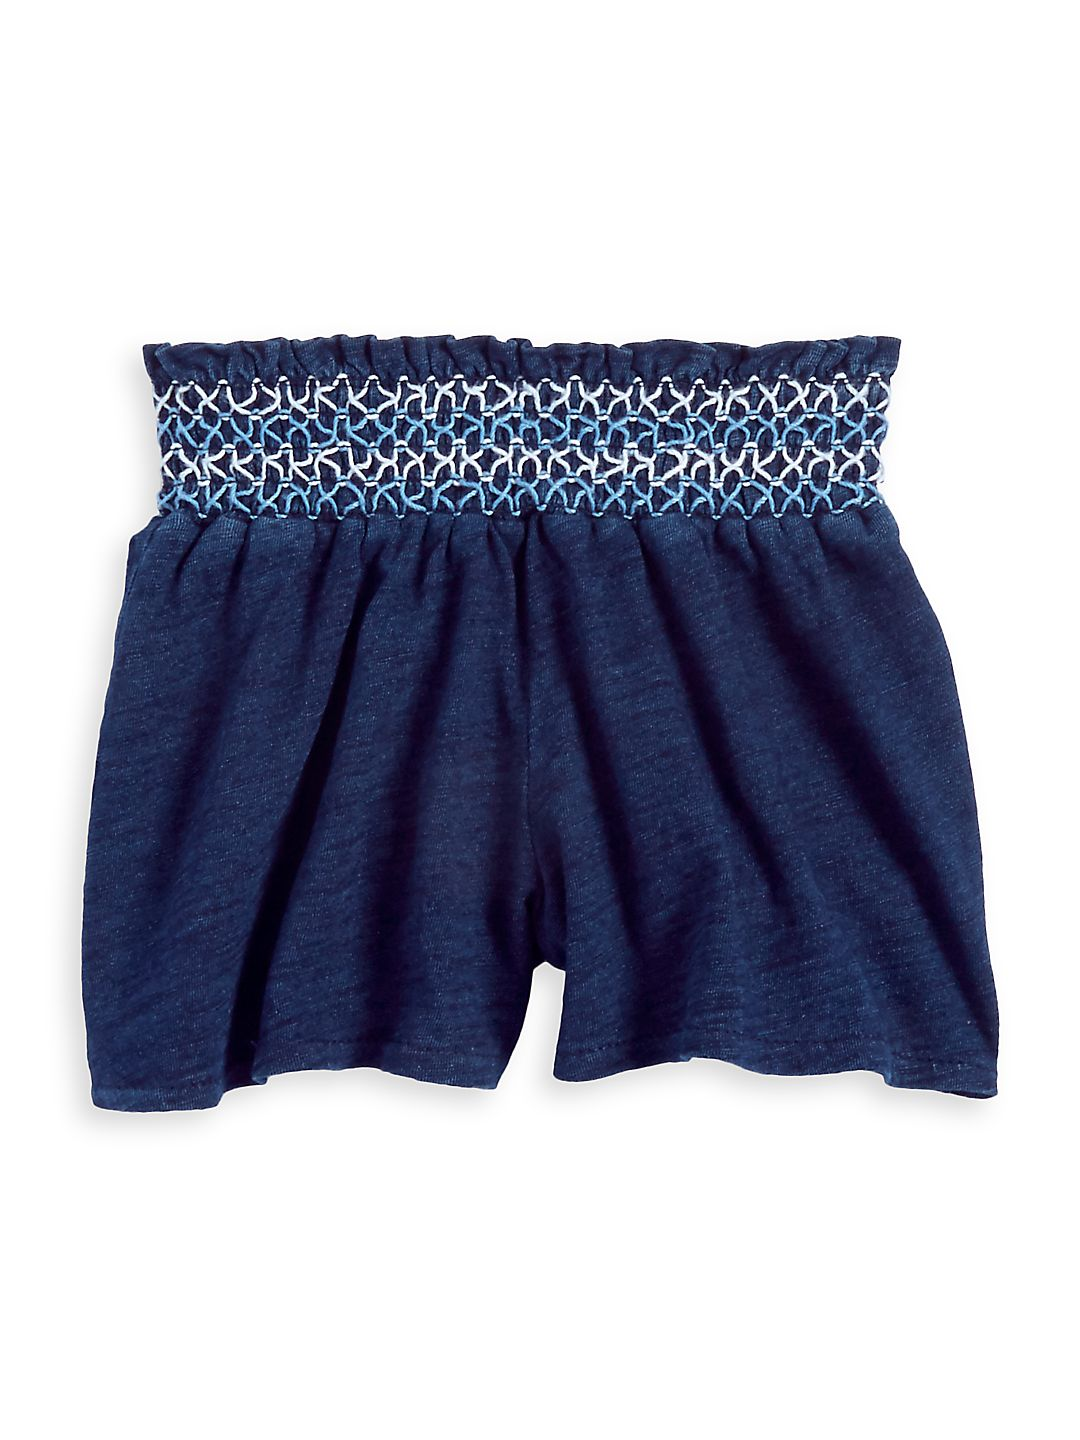 Little Girl's Knitted Cotton Shorts